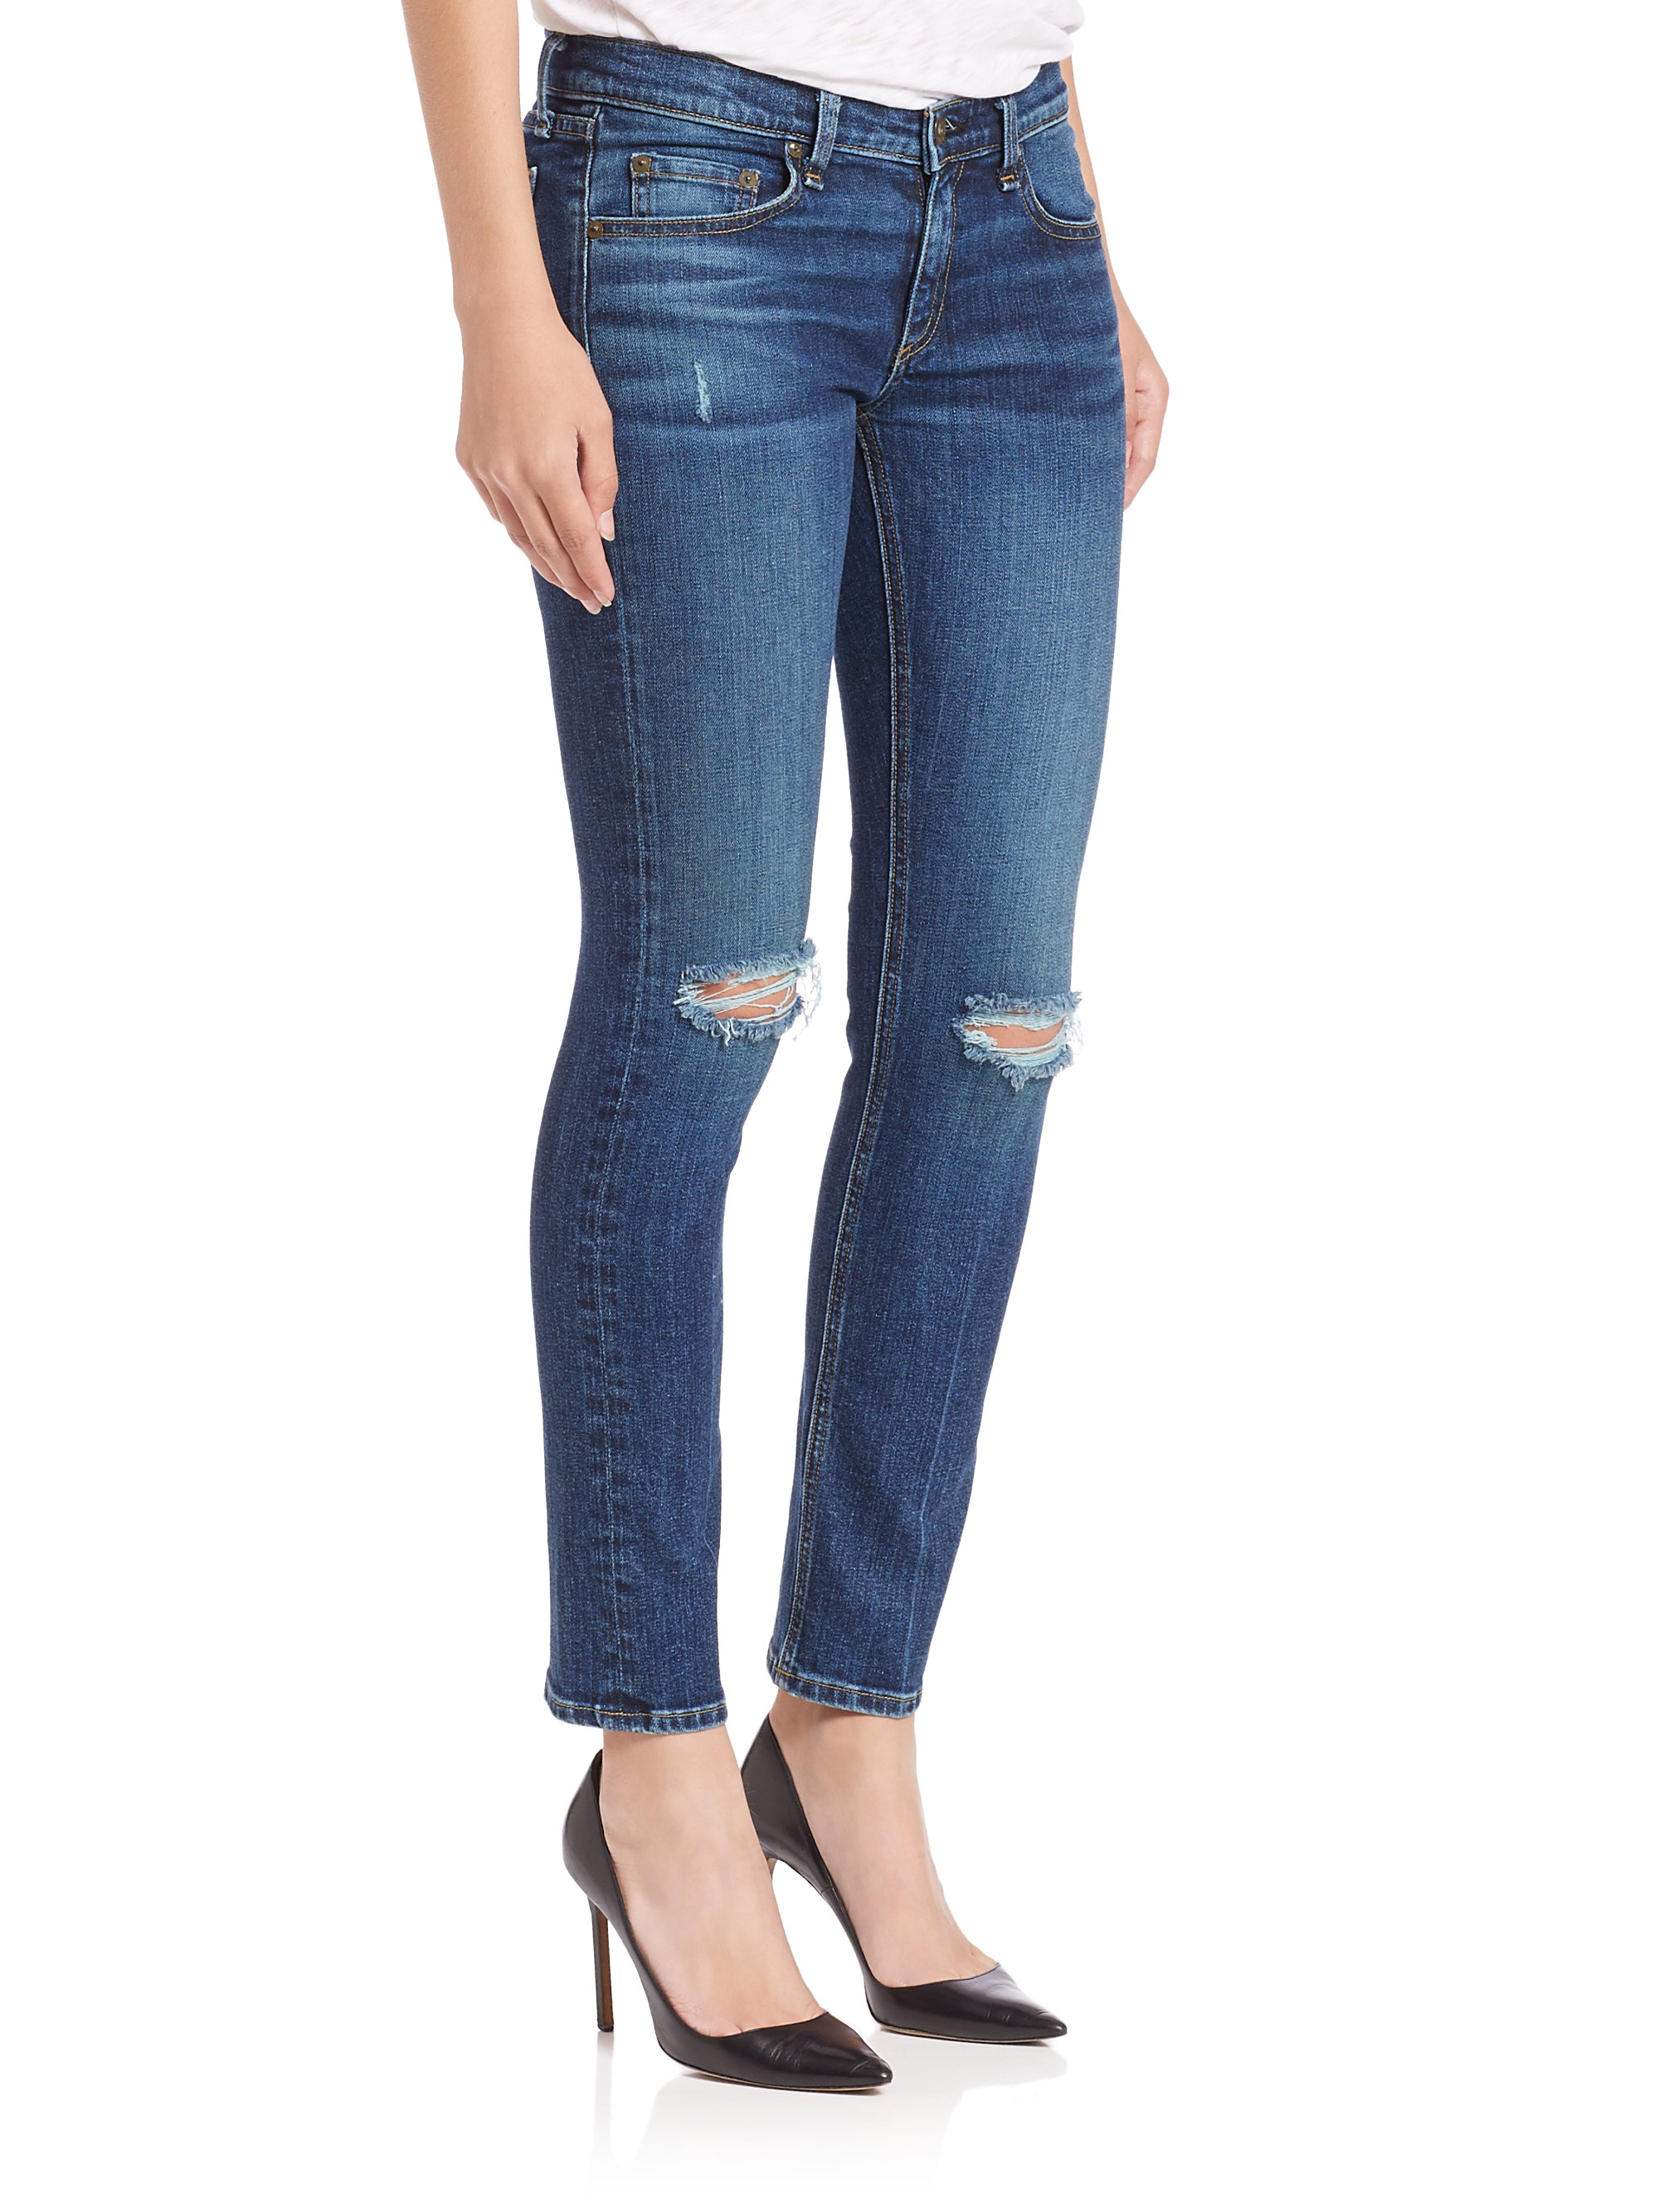 Rag & bone Mid-rise Distressed Cropped Skinny Boy Jeans in Blue | Lyst